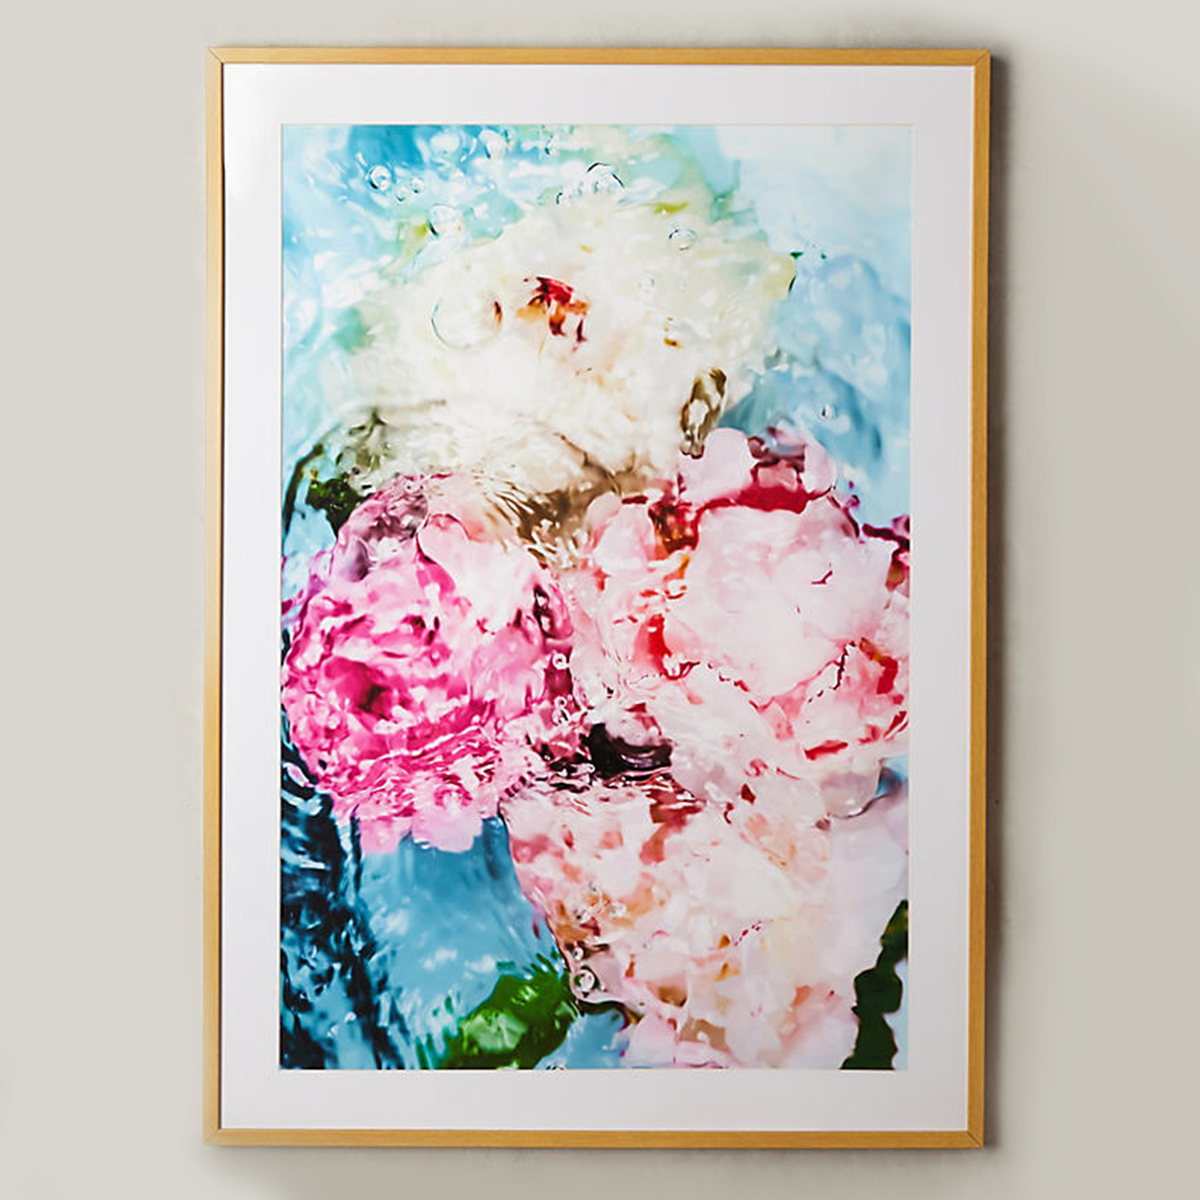 Stunning floral wall art with swirling colors. photo